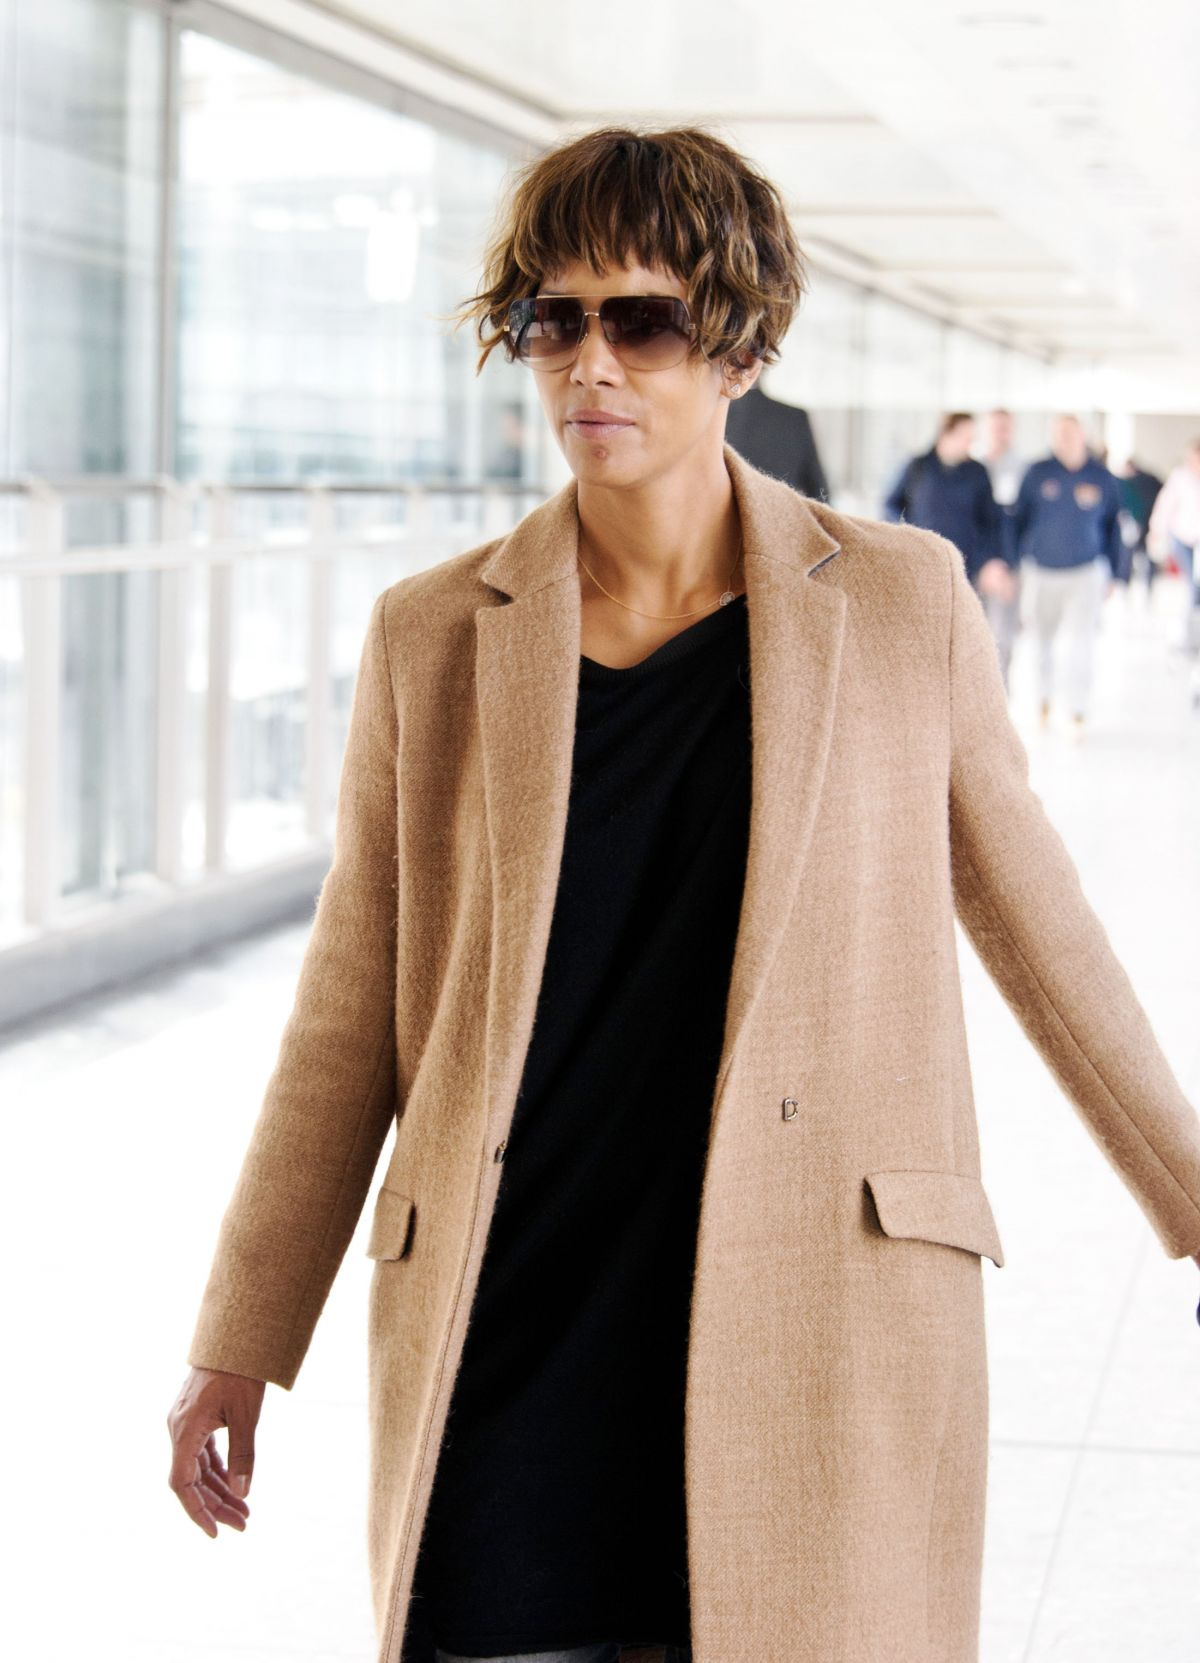 HALLE BERRY at Heathrow Airport in London 04/25/2016